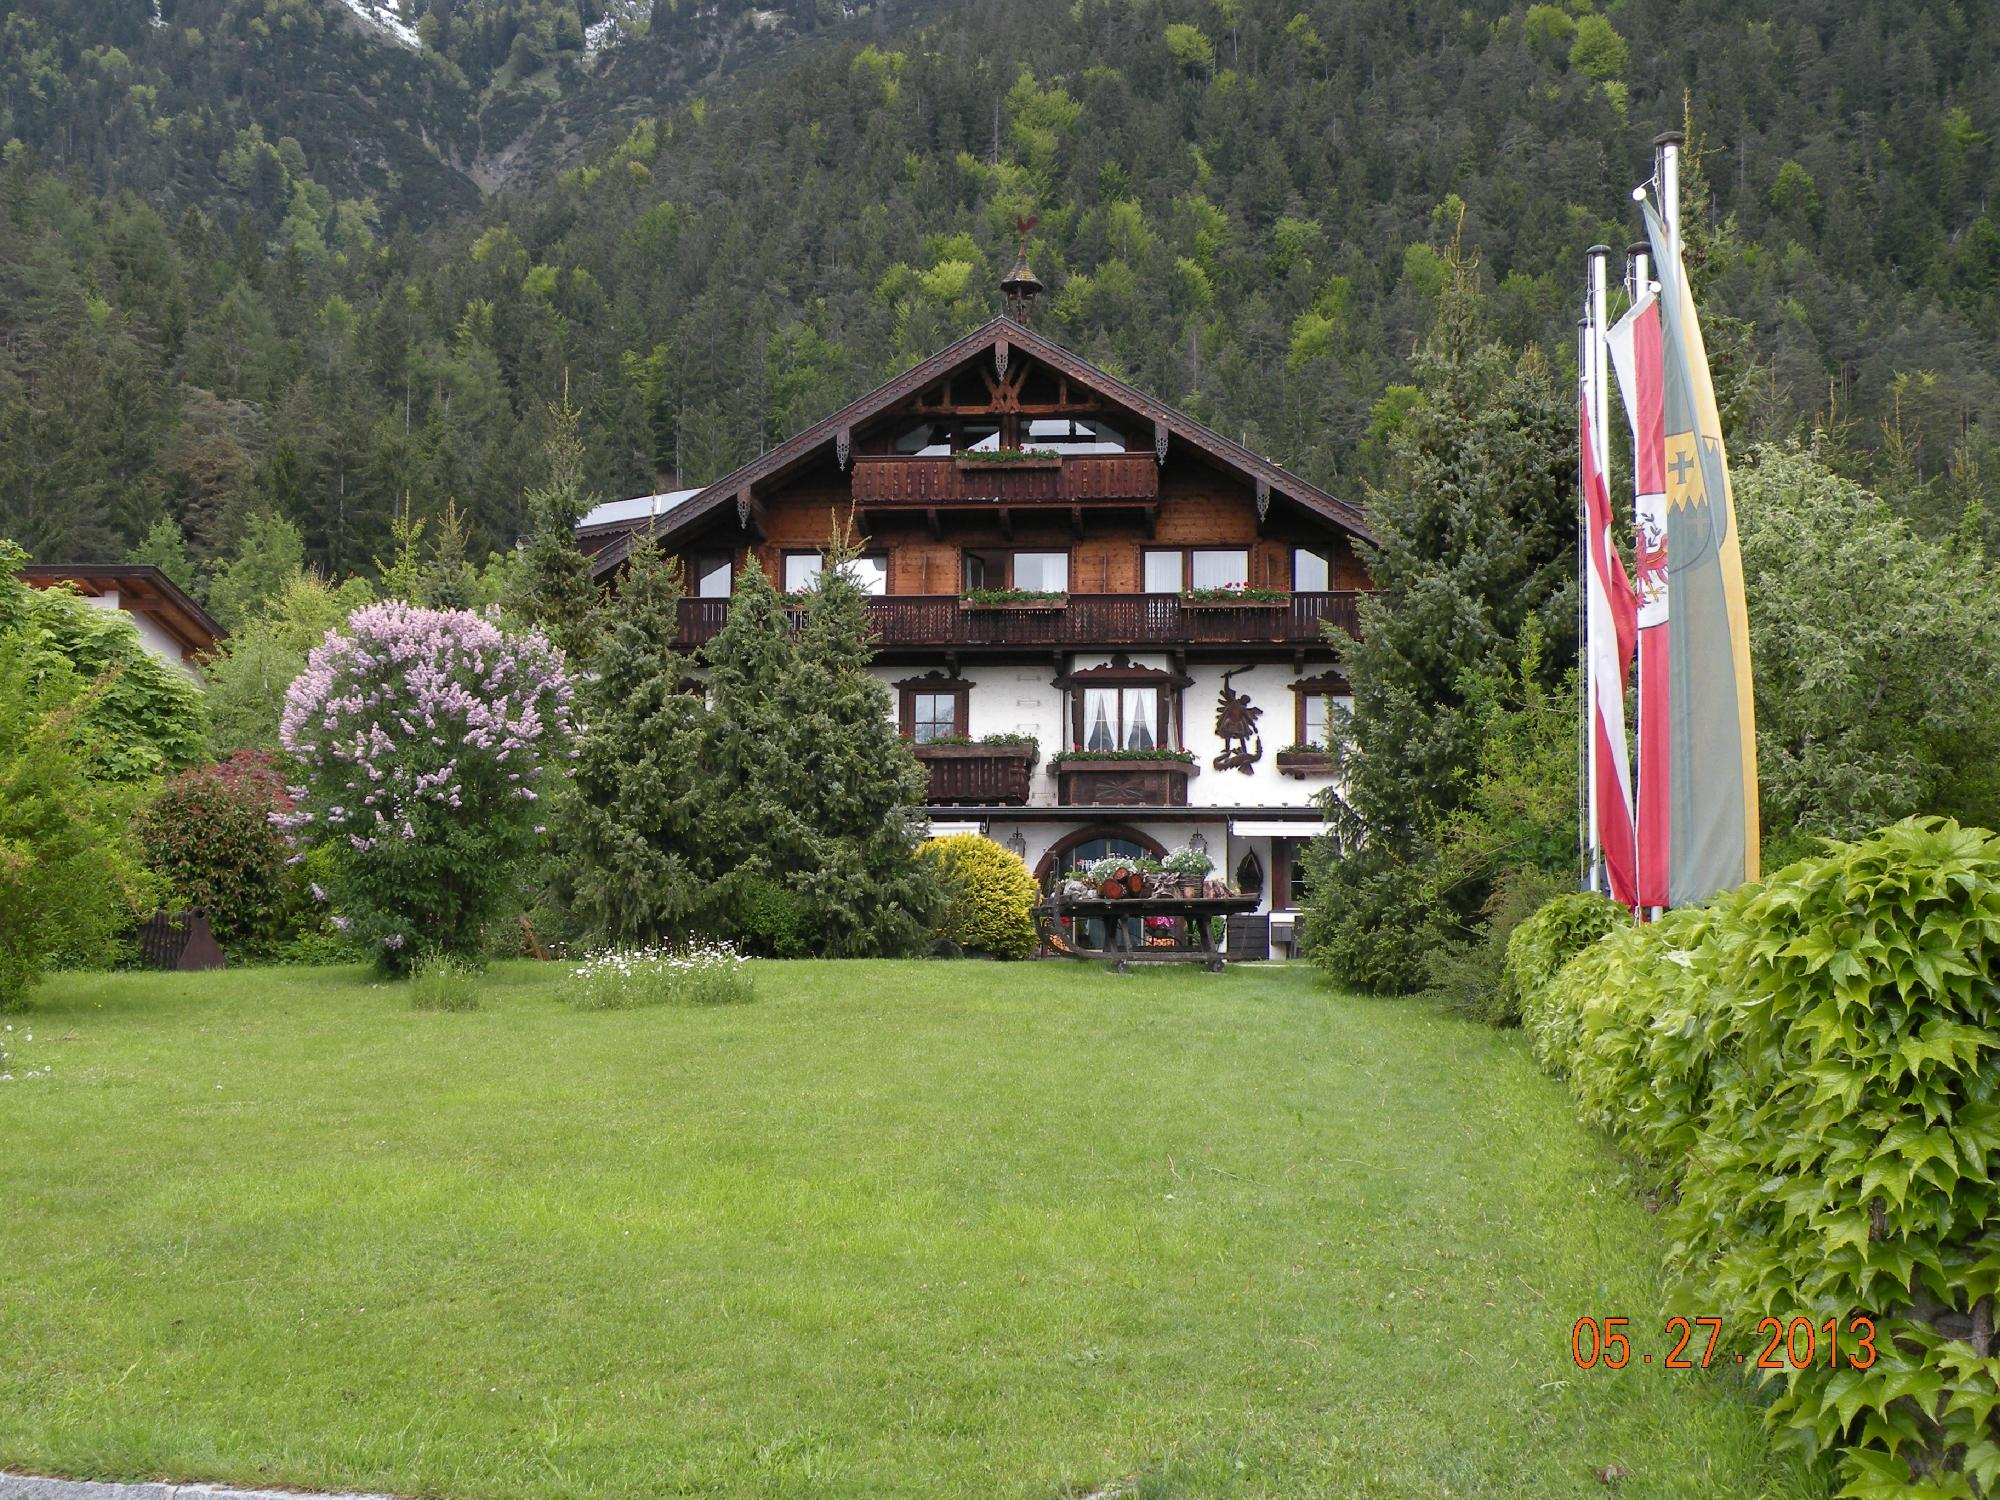 Michaelerhof Inn